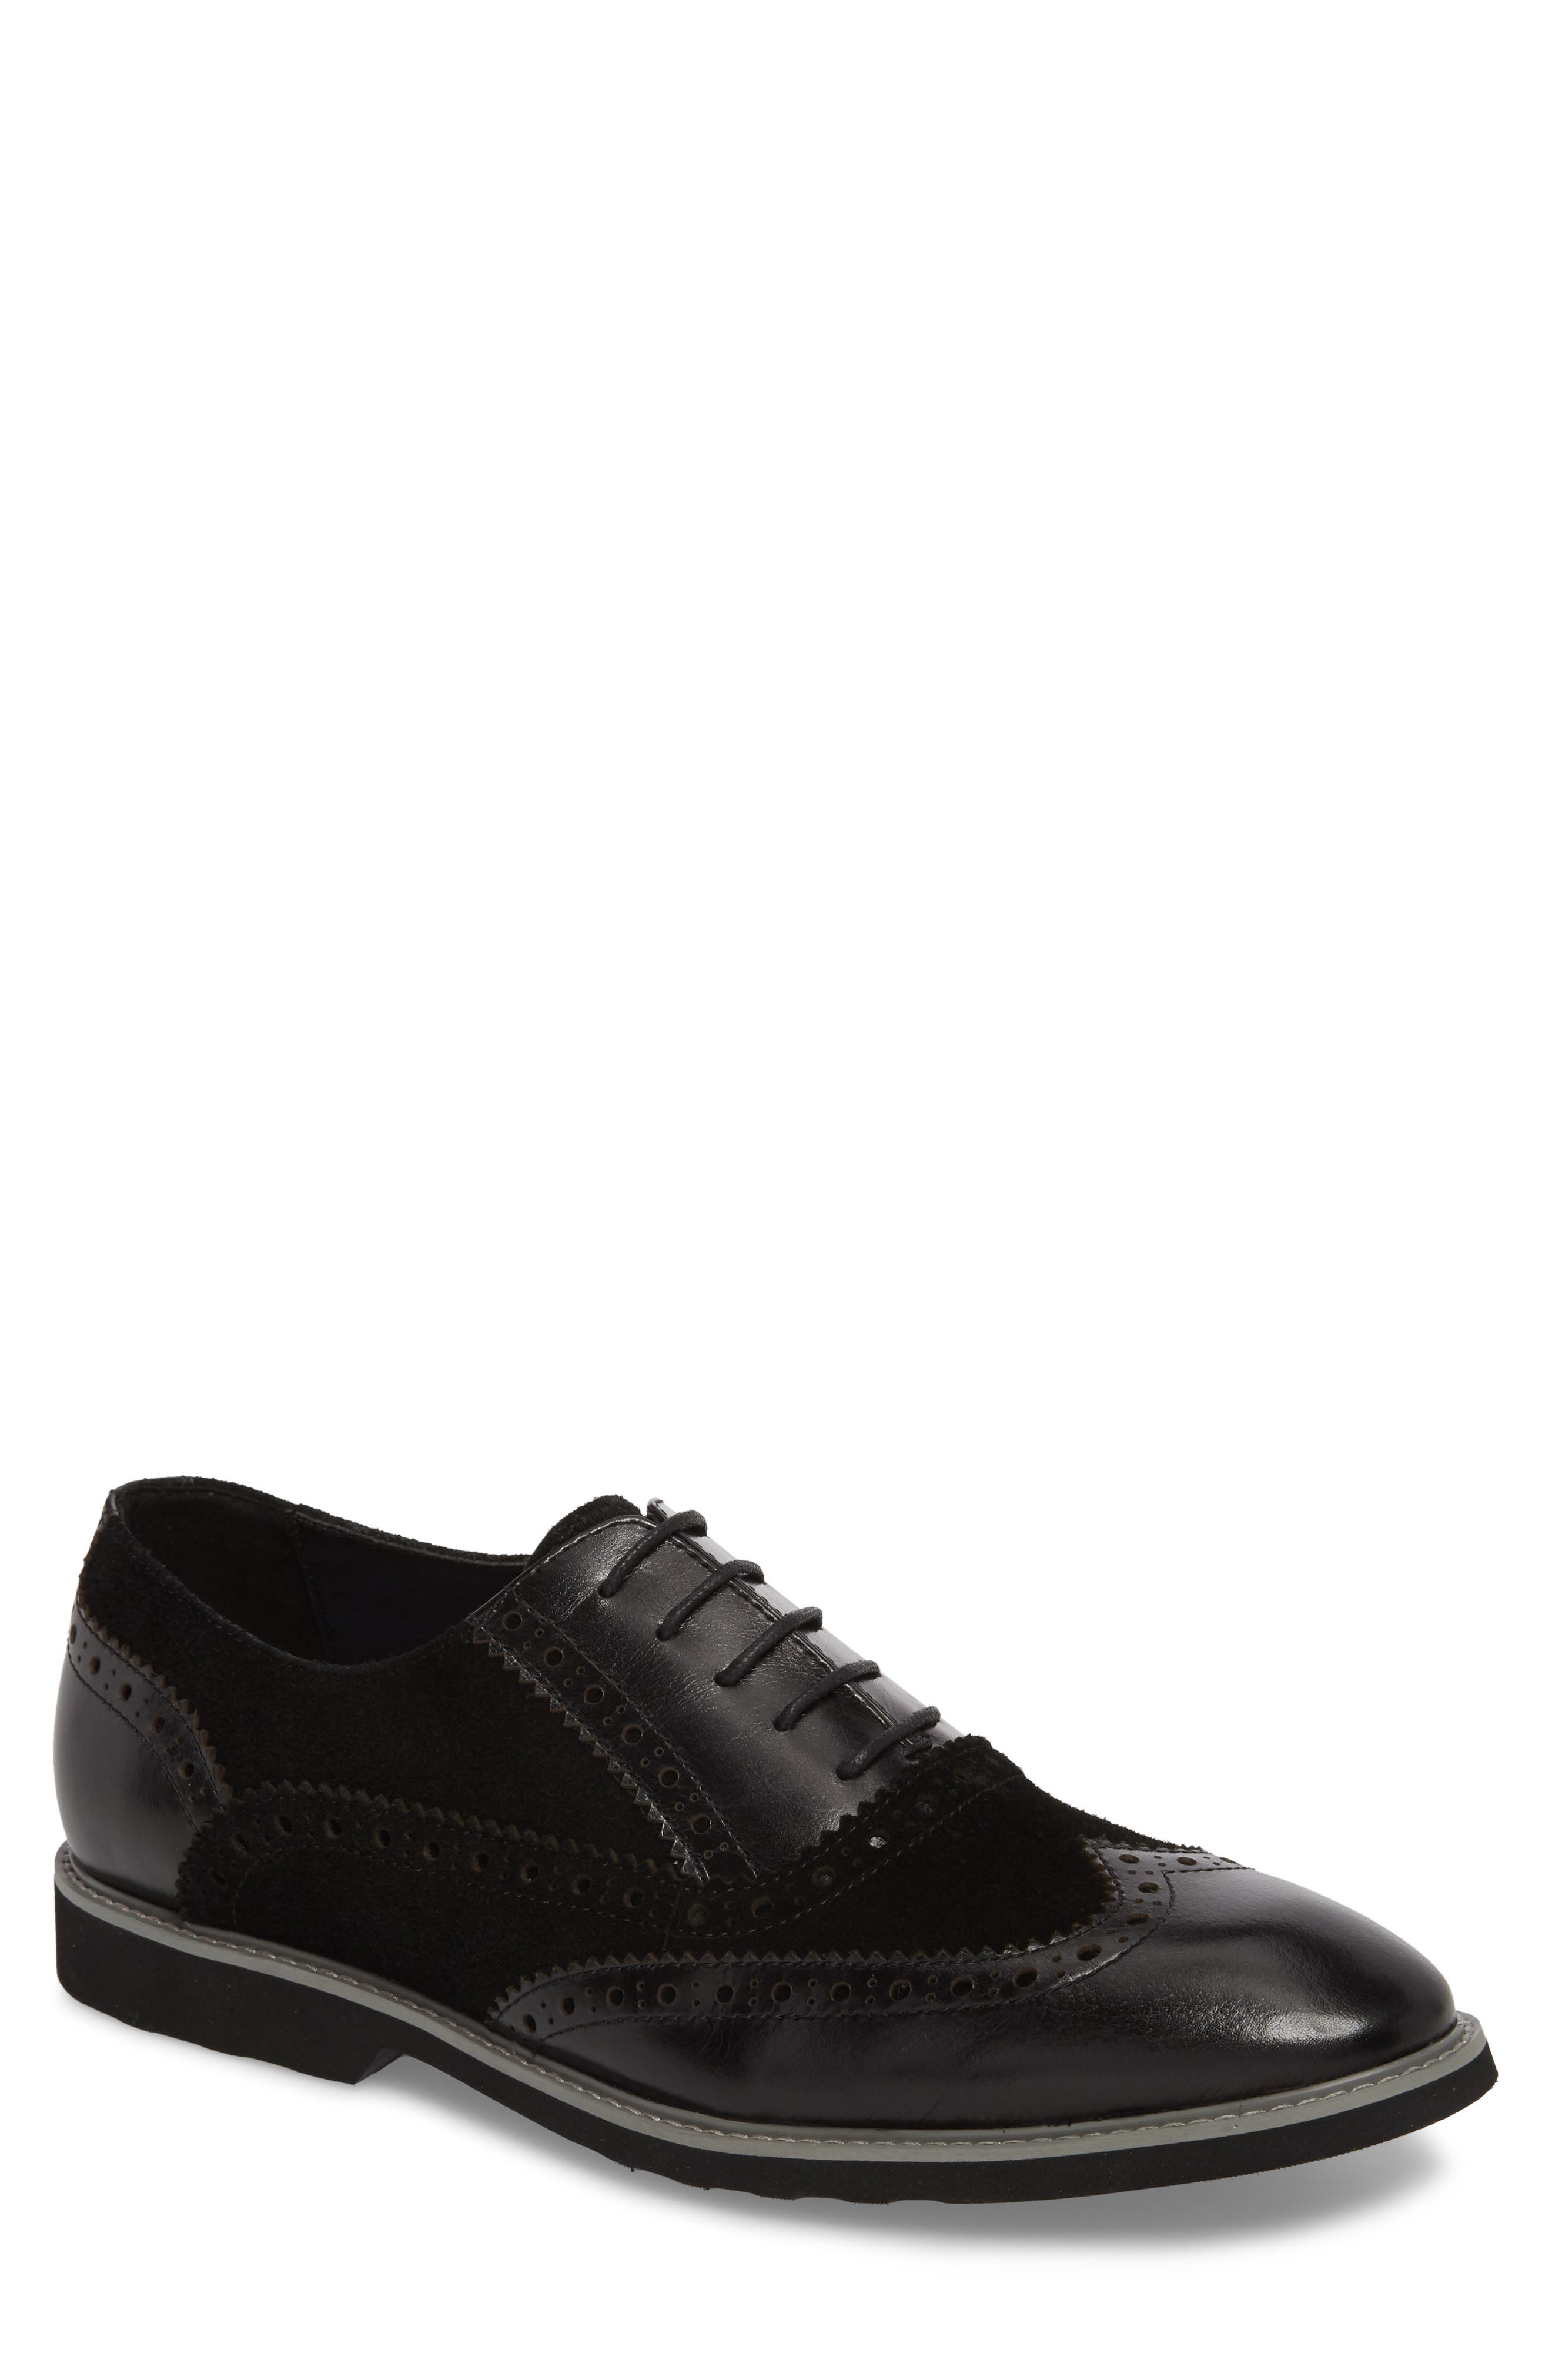 Chorley Wingtip Oxford,                             Main thumbnail 1, color,                             Black Leather/ Suede